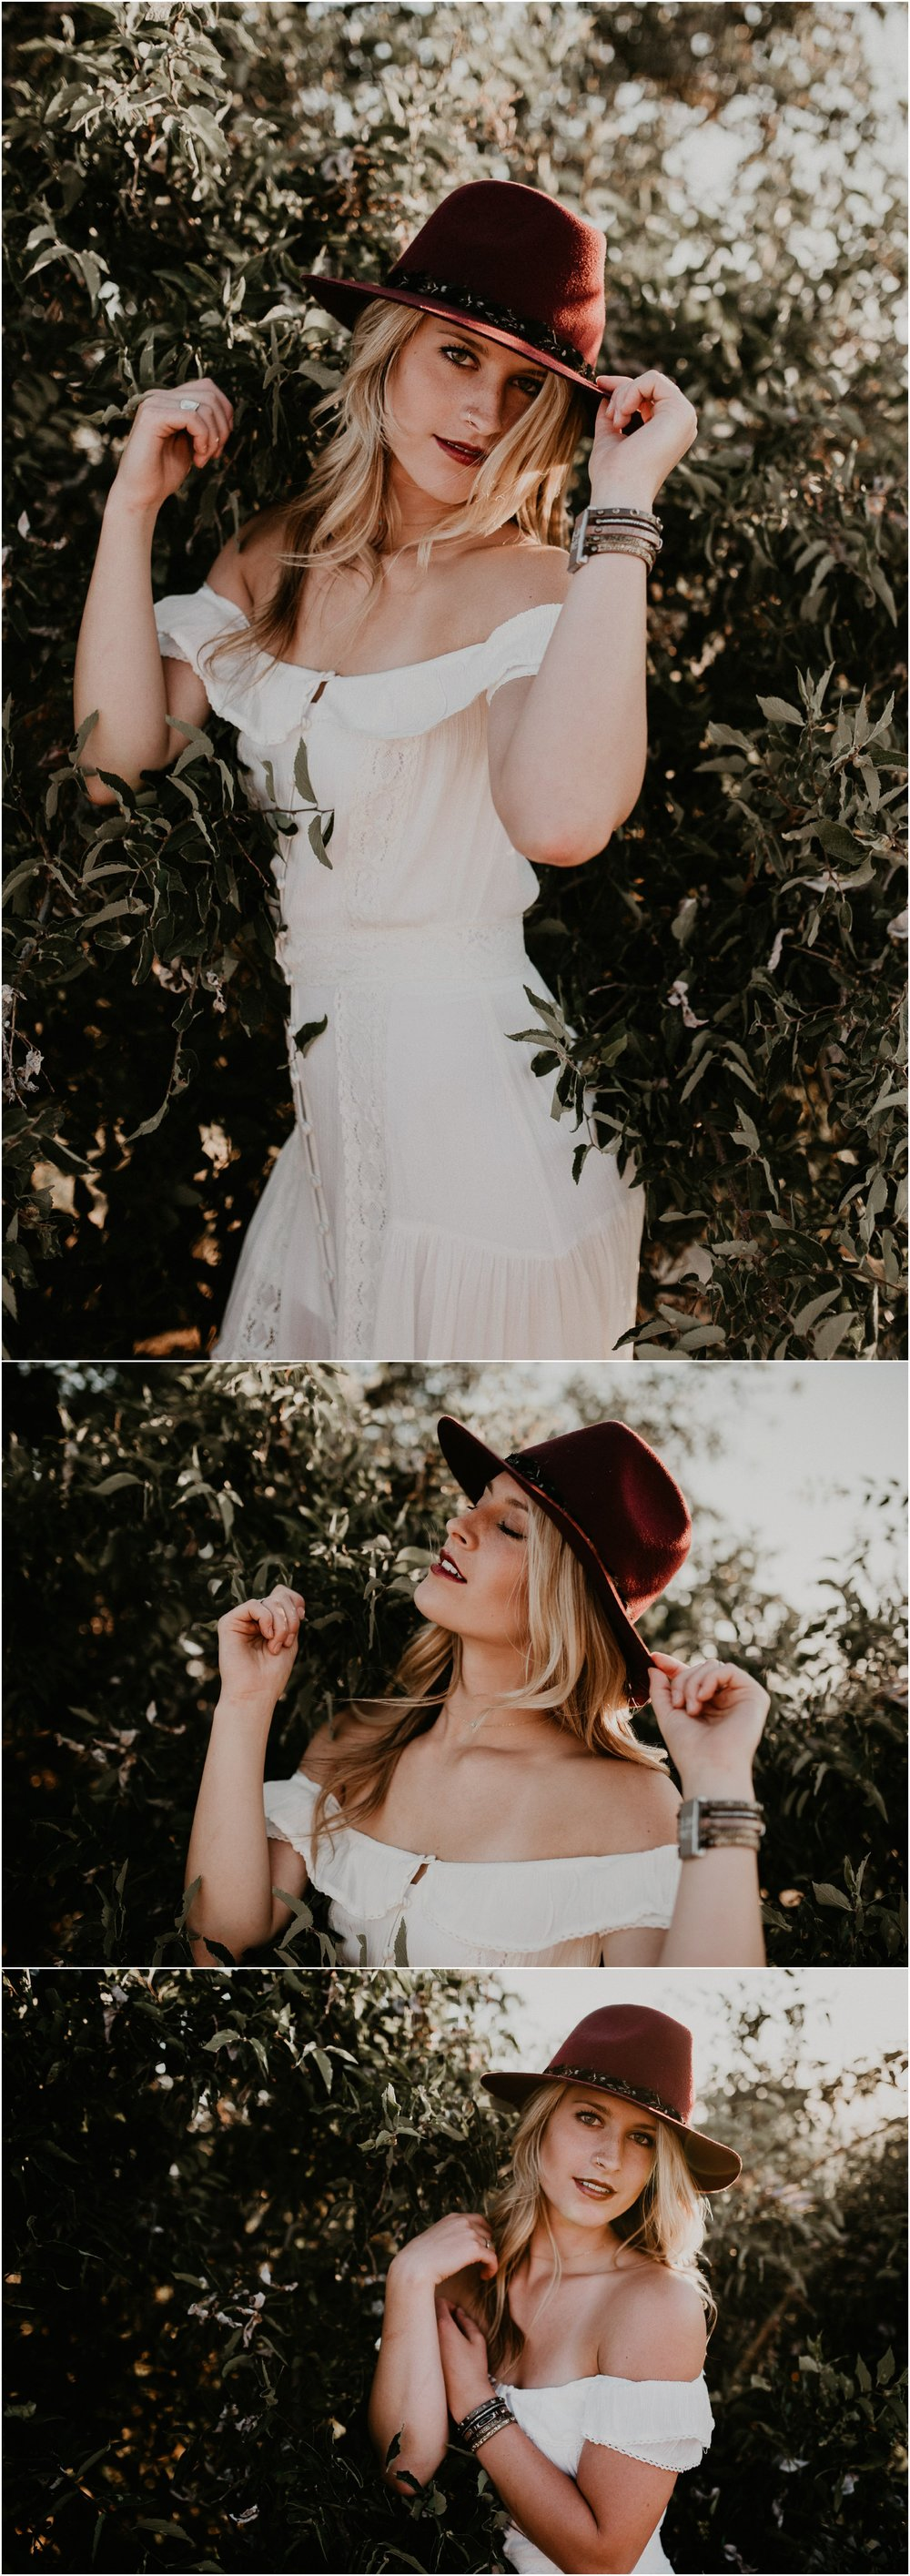 Boise Senior Photographer Makayla Madden Photography Styling Boho Downtown Idaho Table Rock Swank Boutique Creative Senior Picture Ideas Inspiration Golden Hour Raw Real Unique Off the Shoulder